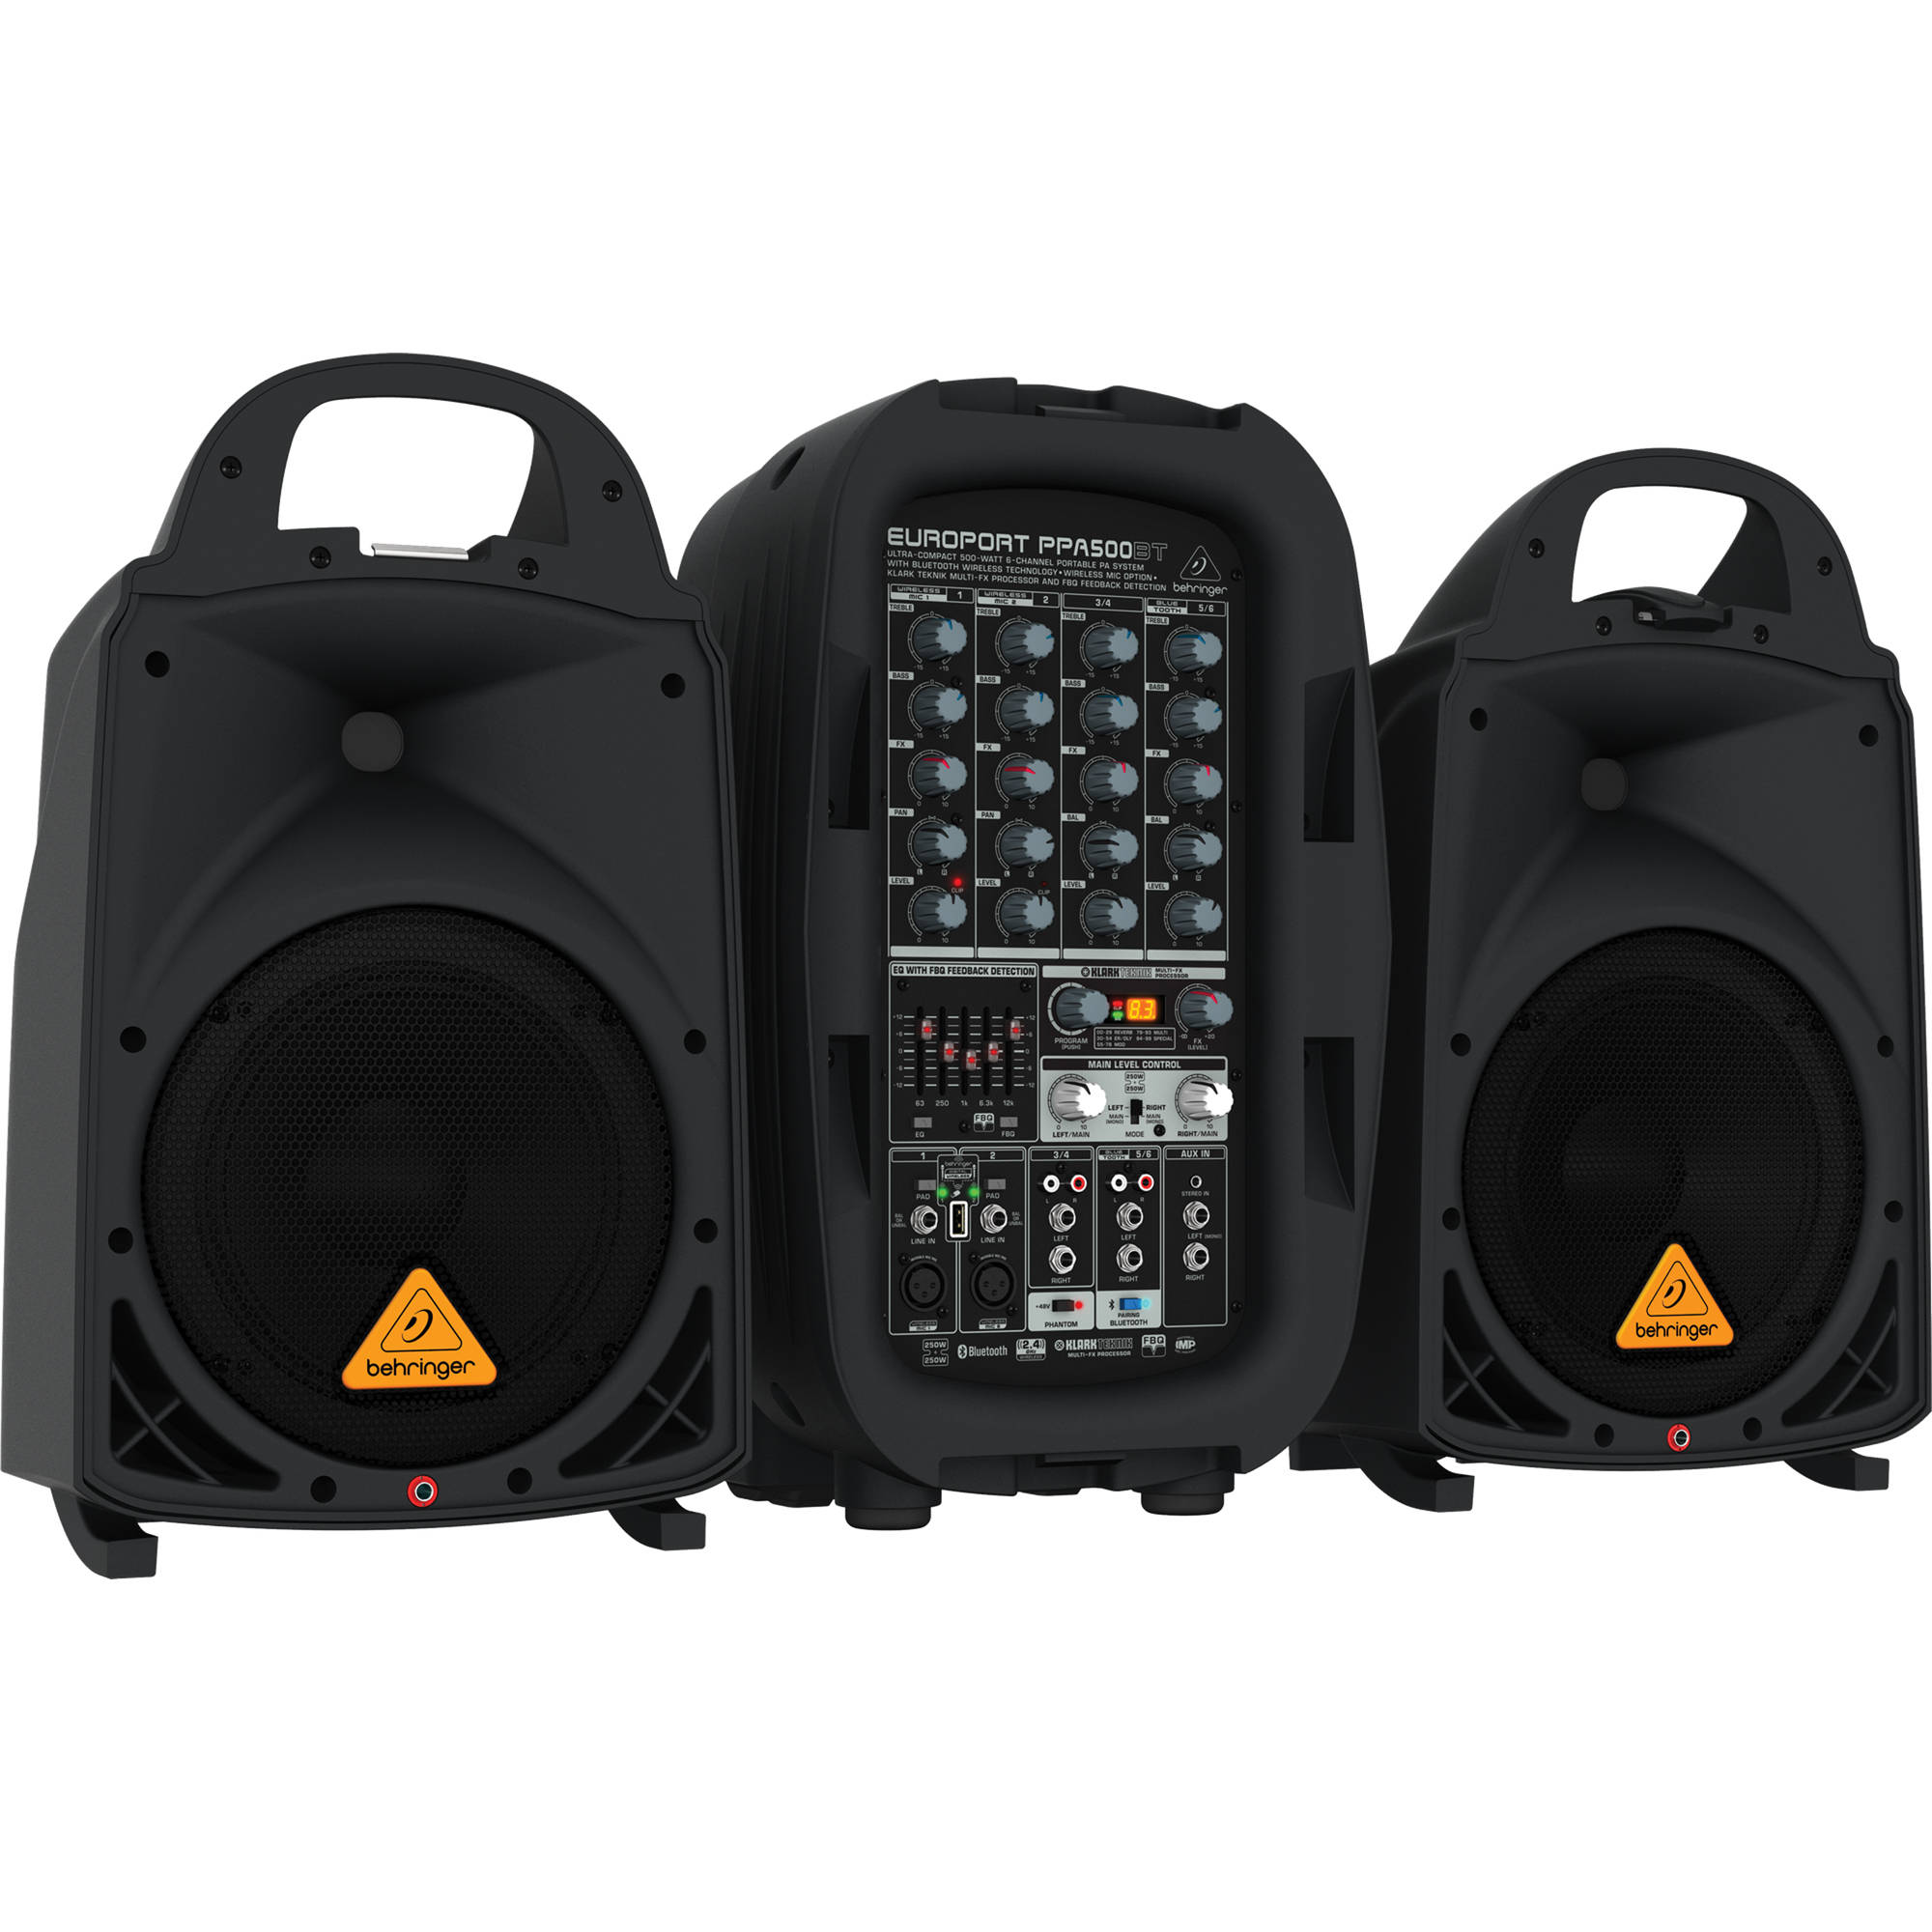 Portable Pa Systems Bh Photo Video Battery Receiver Speakers Mono Sub Amplifier And Subwoofer Behringer Europort Ppa500bt 500w 6 Channel System With Bluetooth Wireless